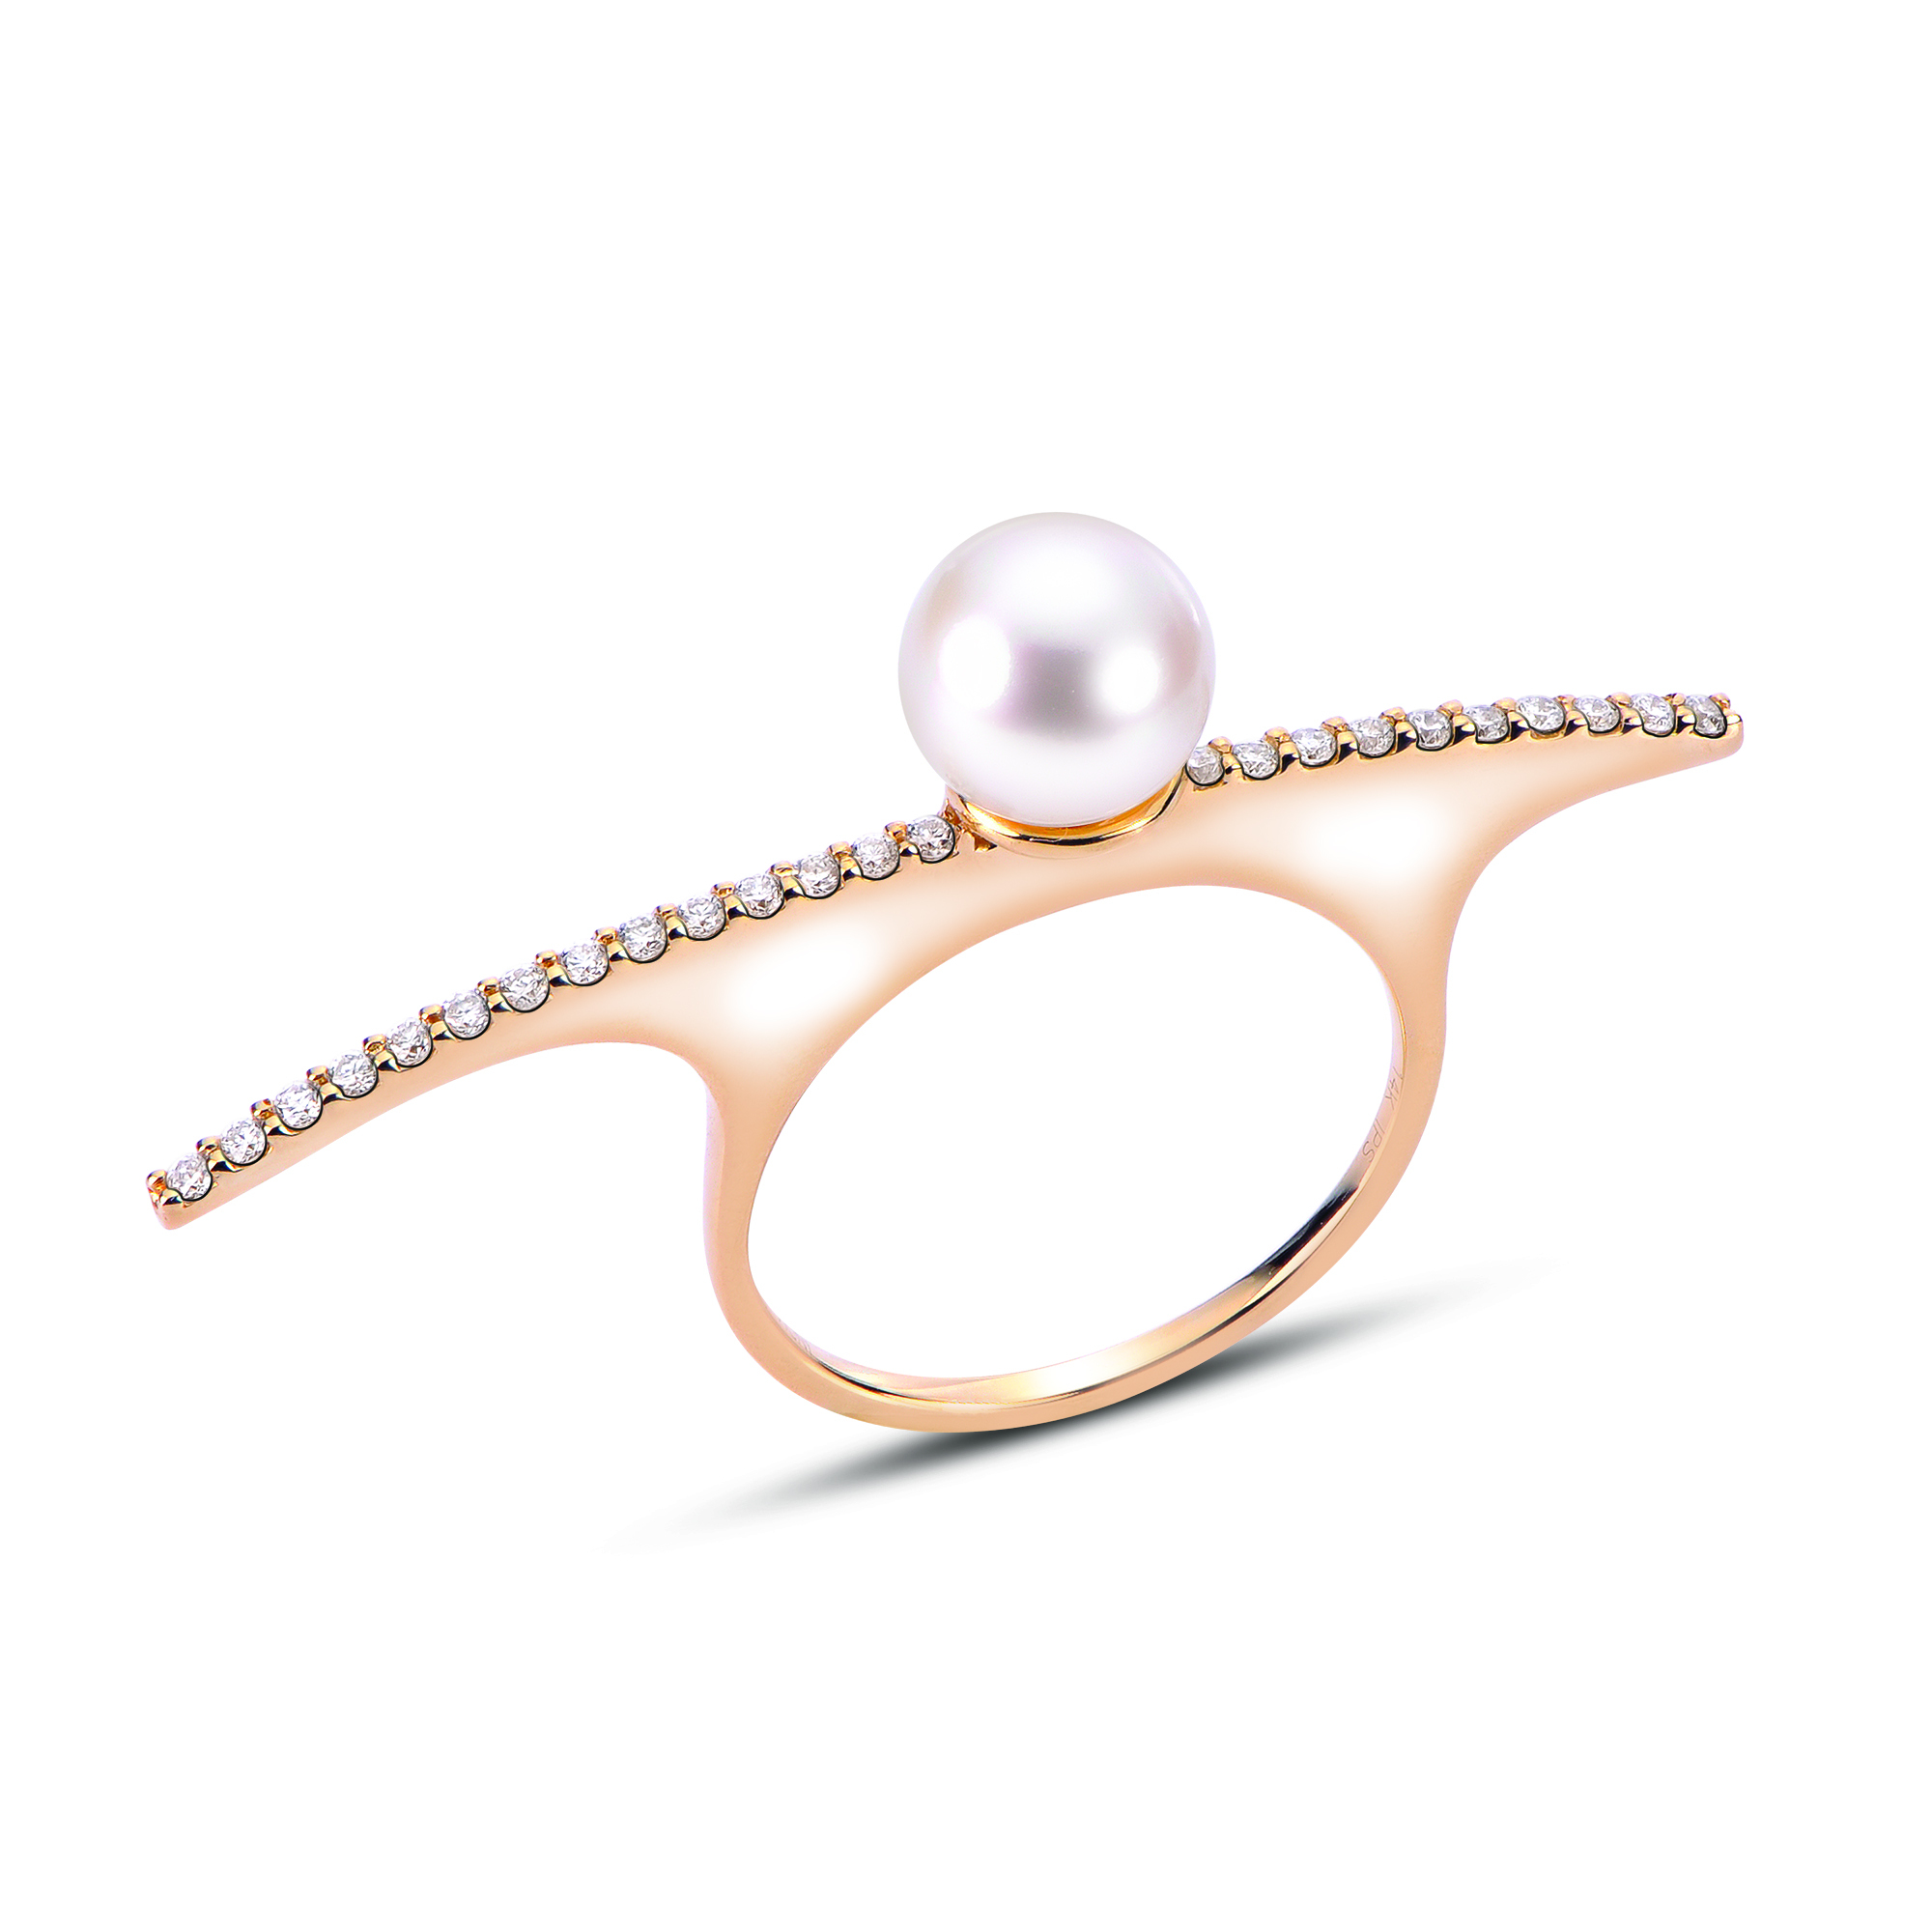 1cb4568b5 14K Yellow Gold Freshwater Pearl Ring - Mills Jewelers